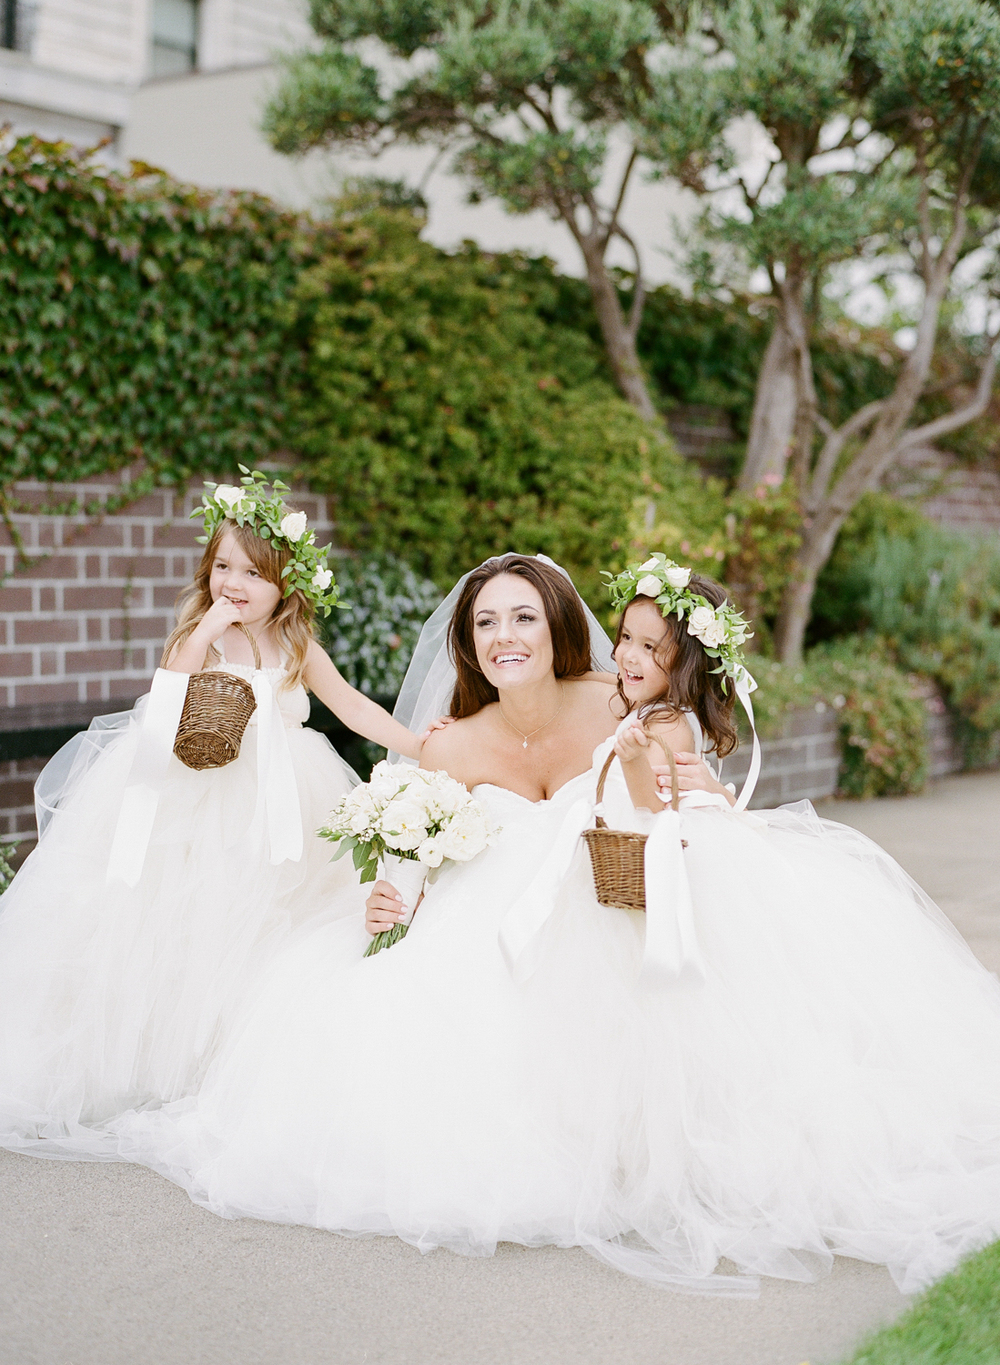 The bride poses with two flower girls in flower crowns; Sylvie Gil Photography